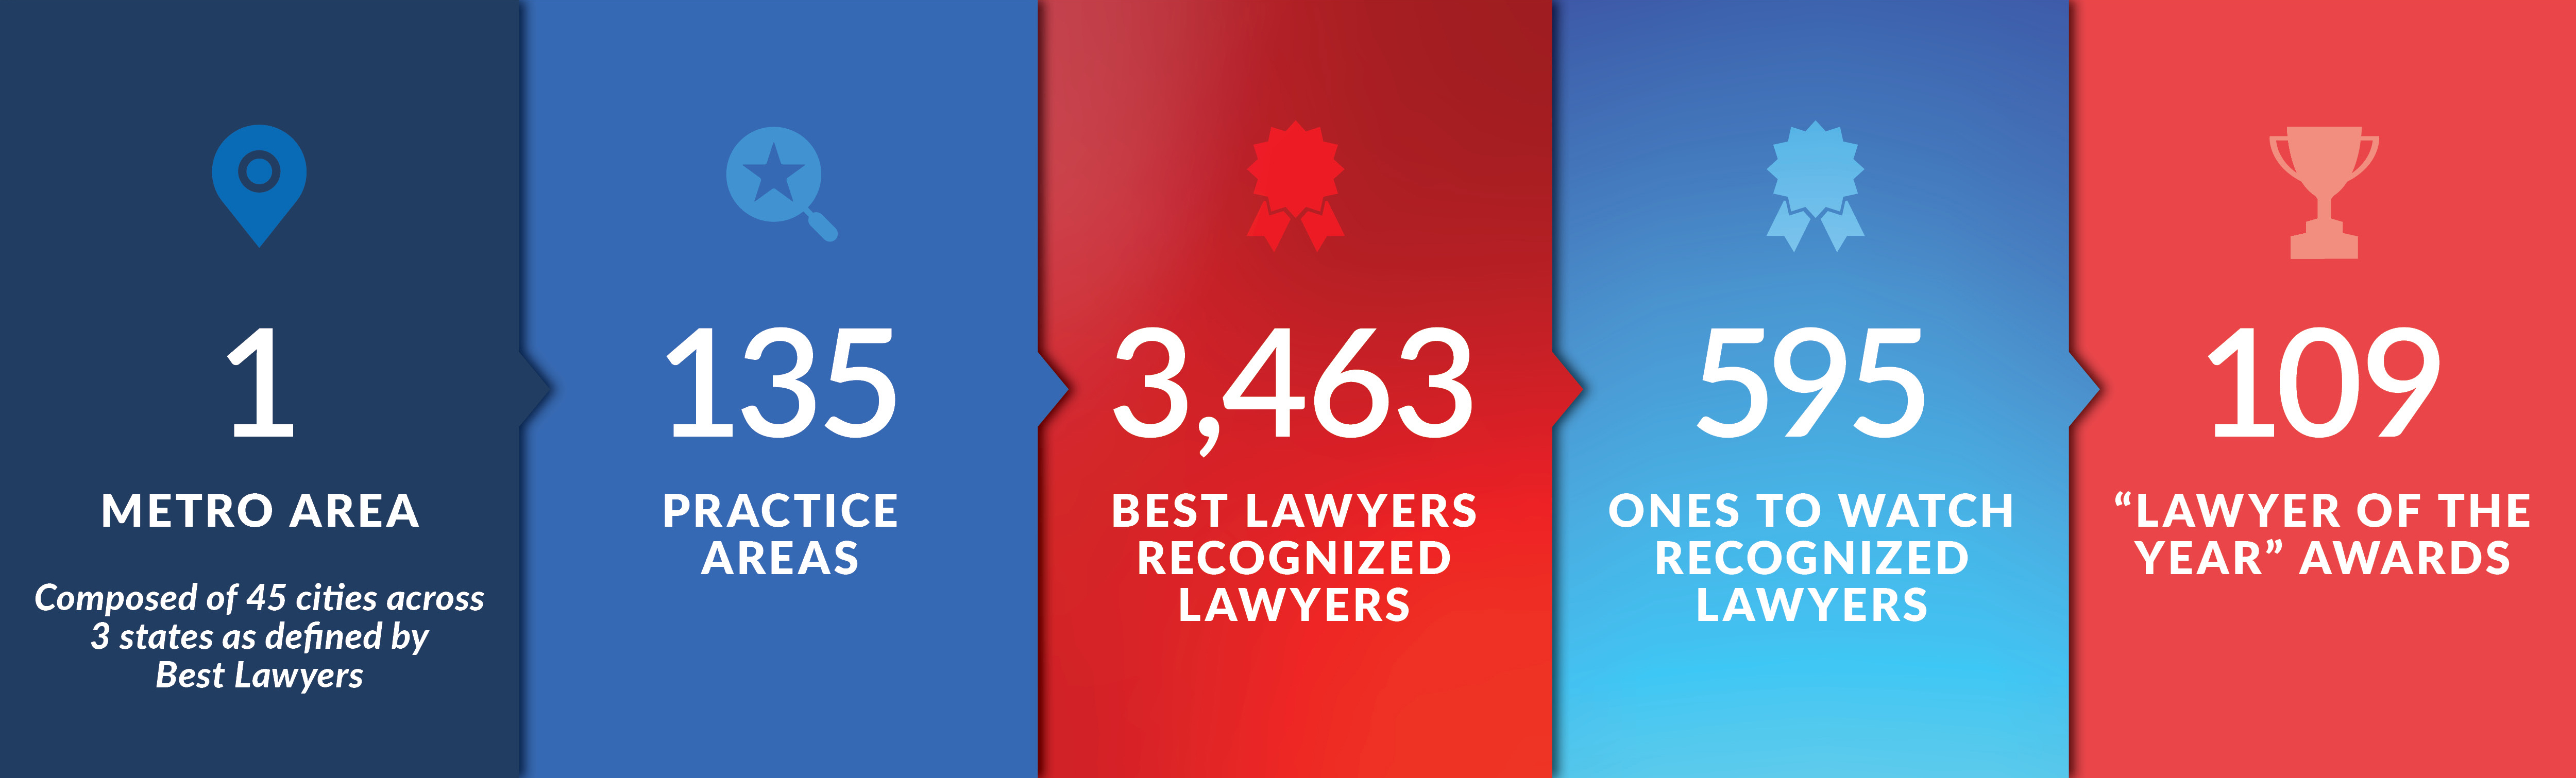 2021 Best Lawyers in Washington D.C. stats